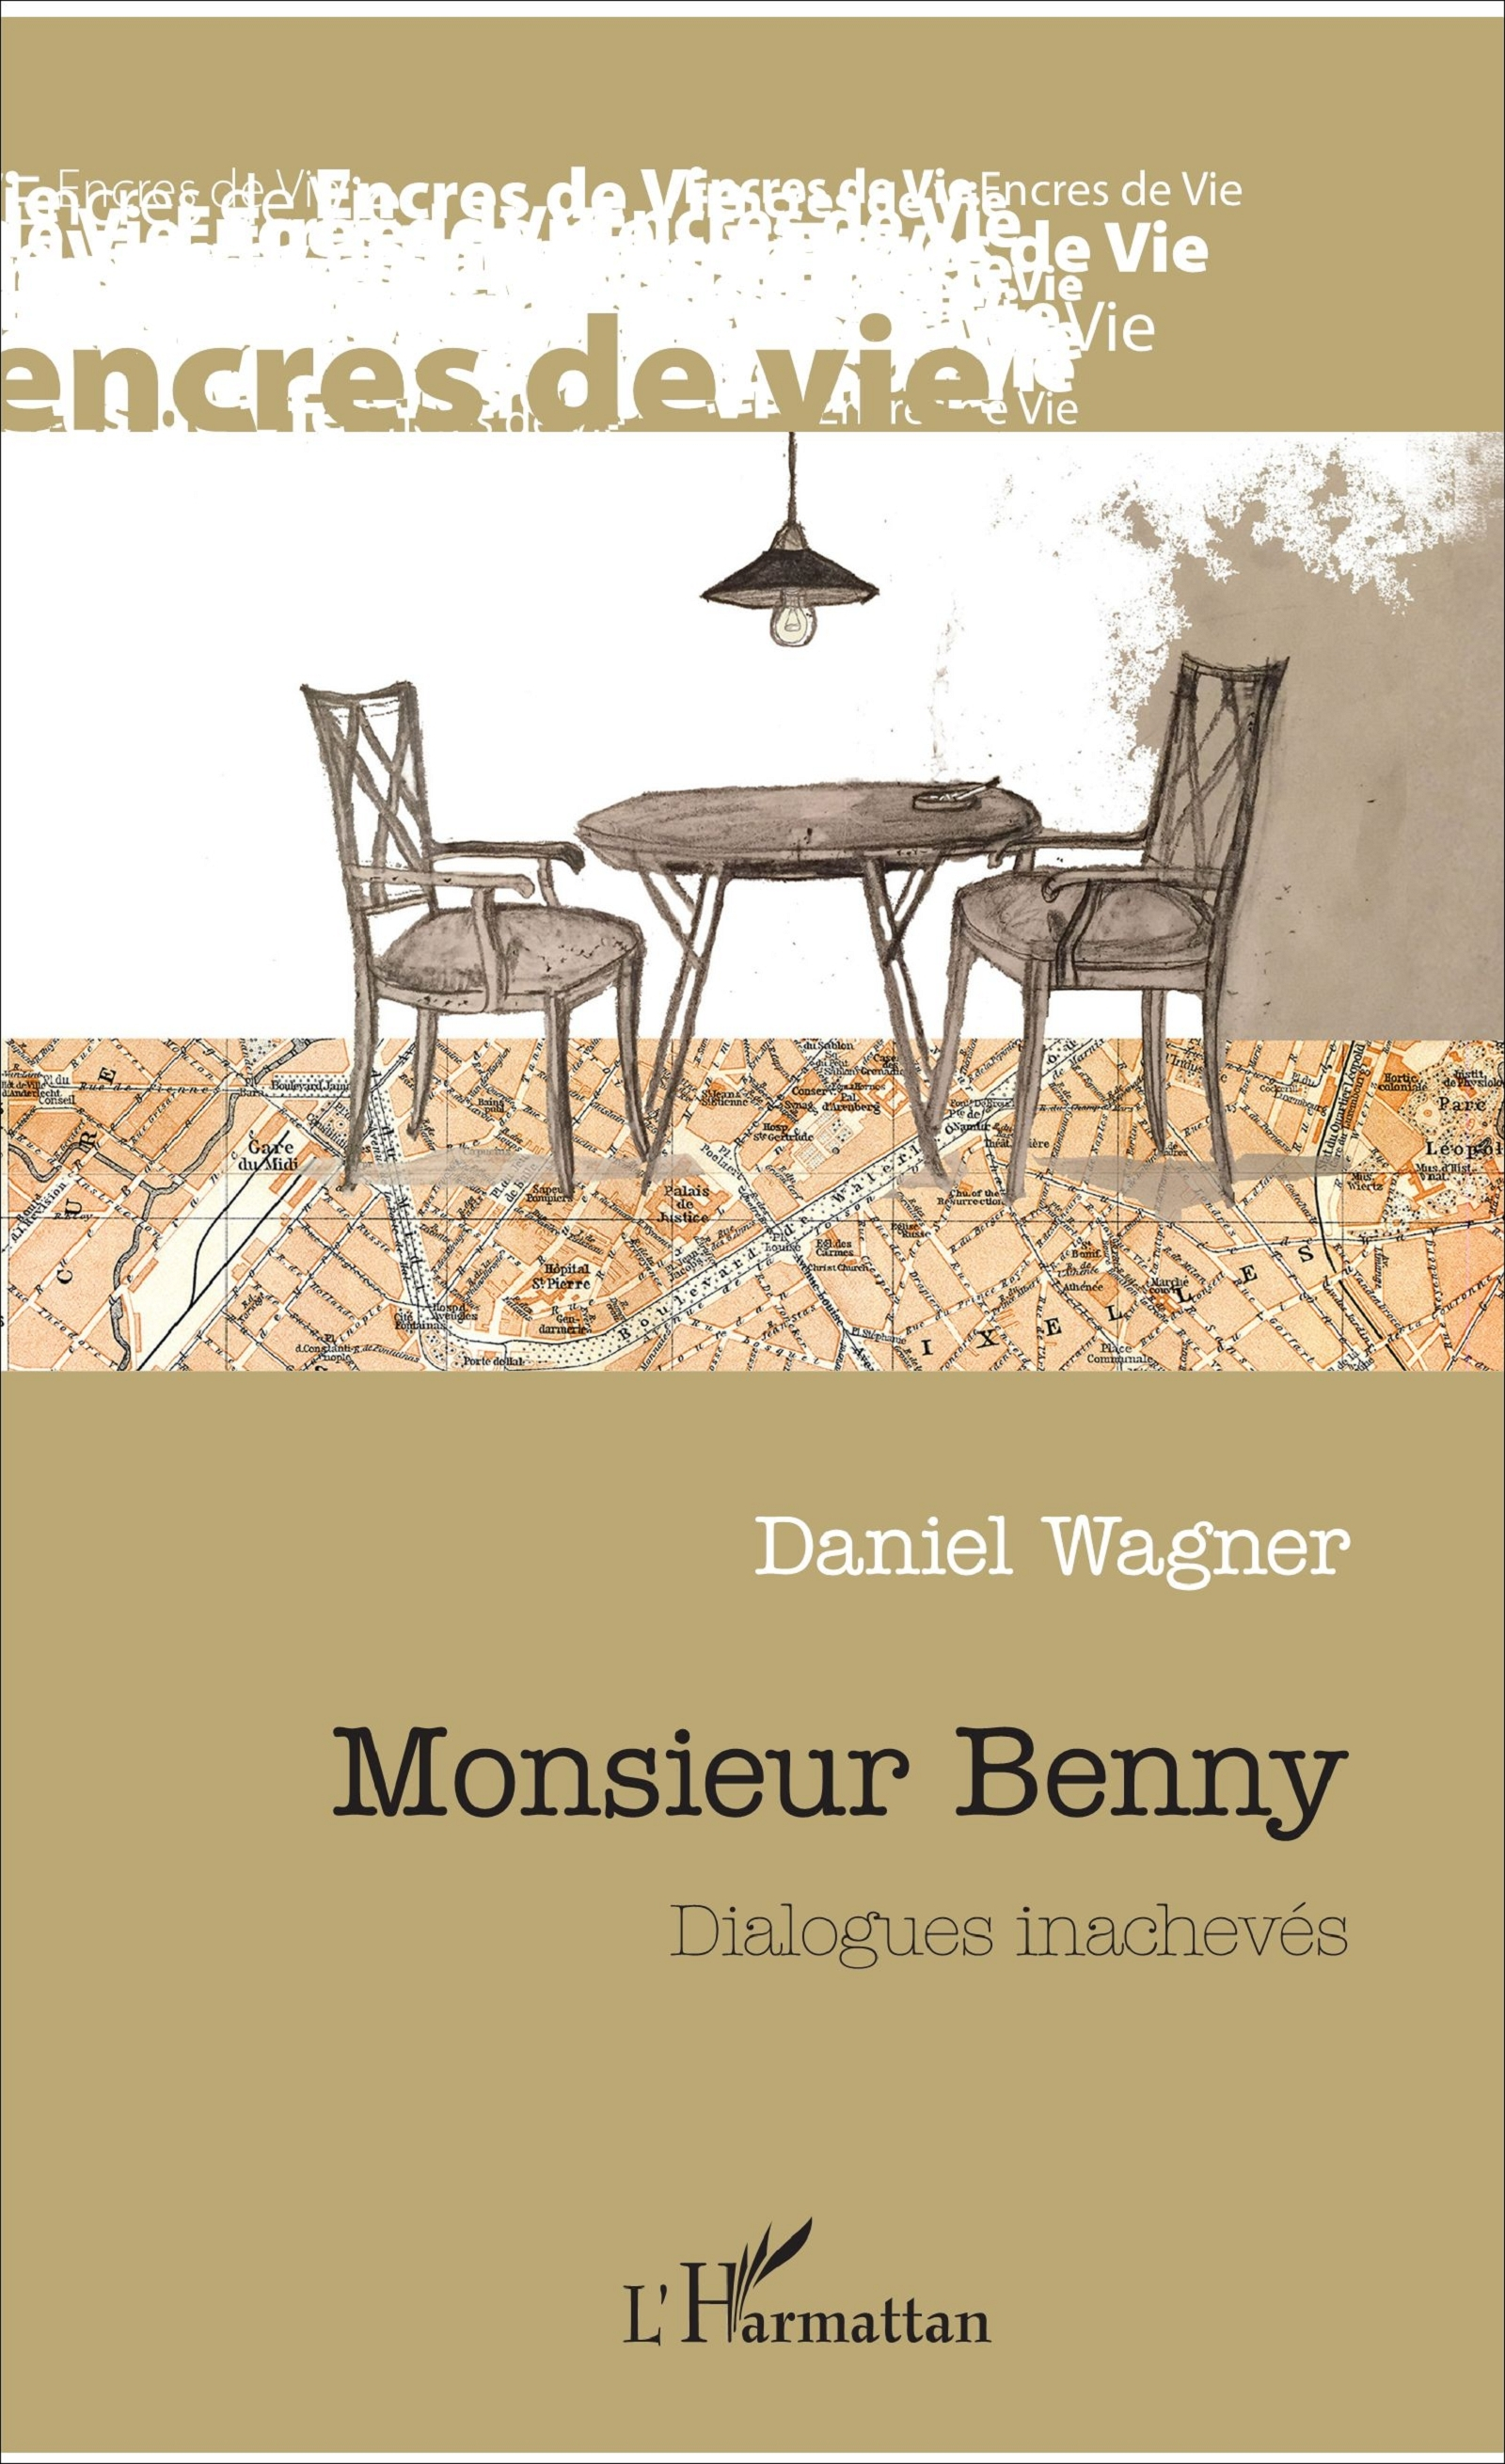 MONSIEUR BENNY DIALOGUES INACHEVES